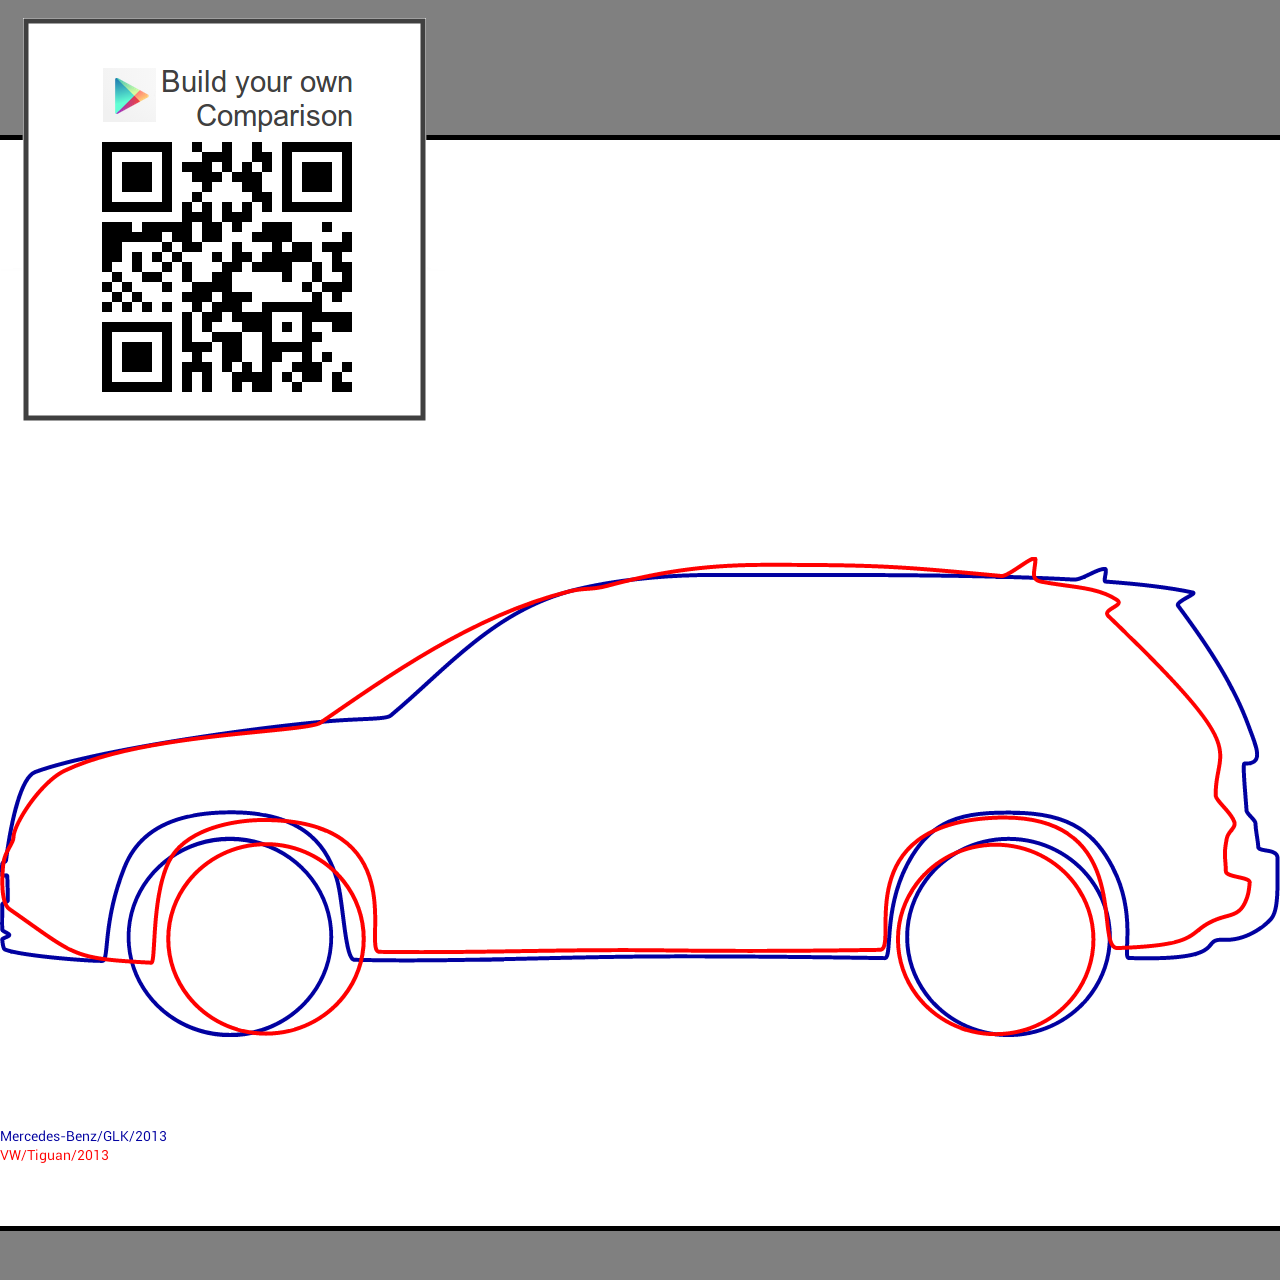 Www car compare org compare car dimensions side by side and to human 39 s body mazda cx 5 2013